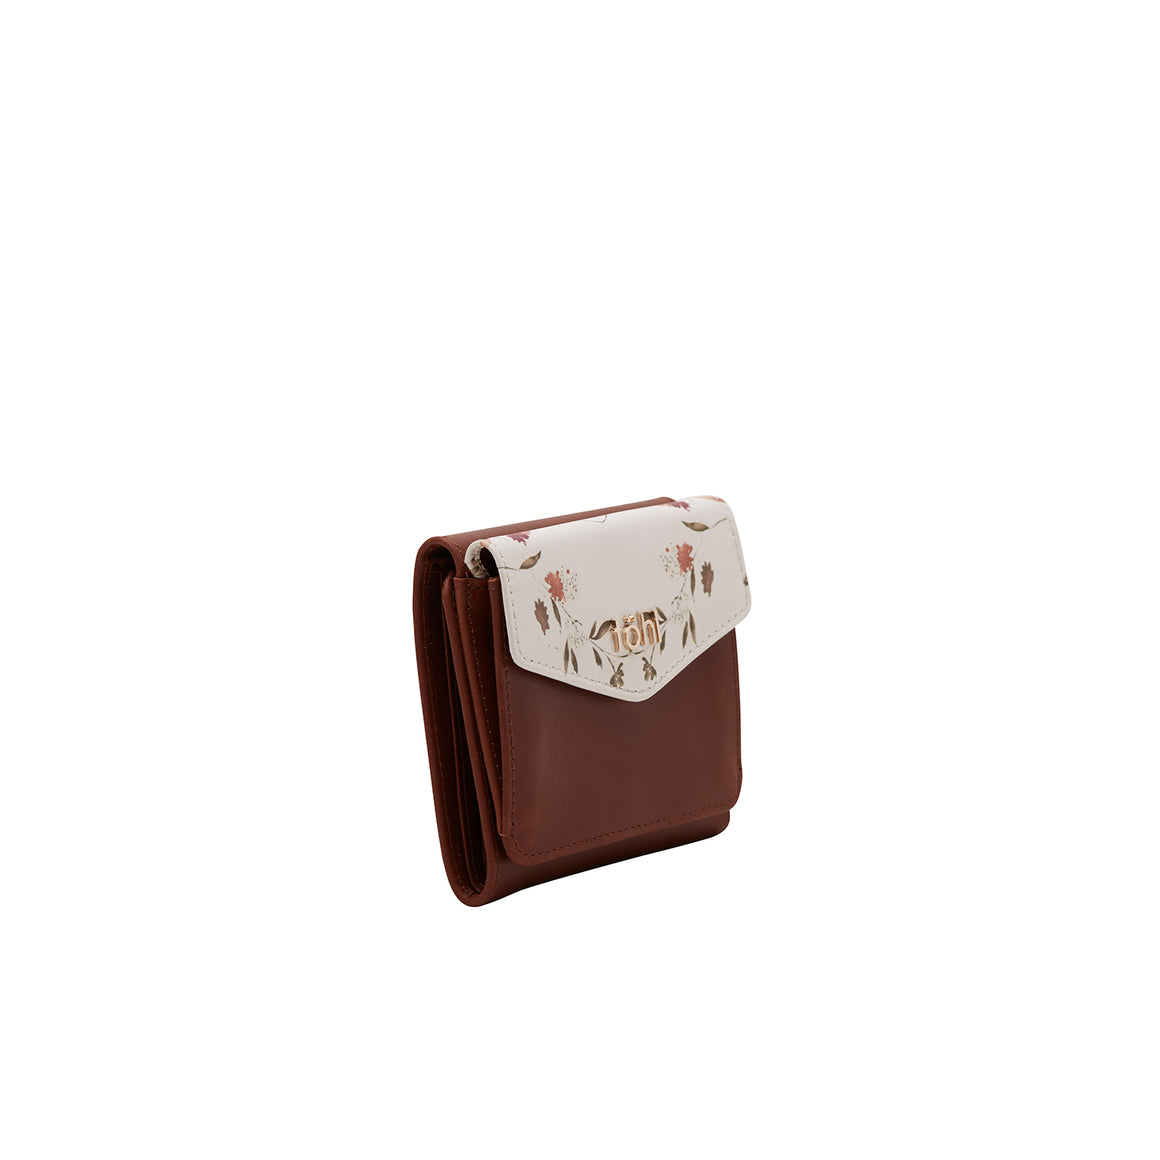 WT 0023 - TOHL HARRIET WOMEN'S WALLET - VINTAGE TAN